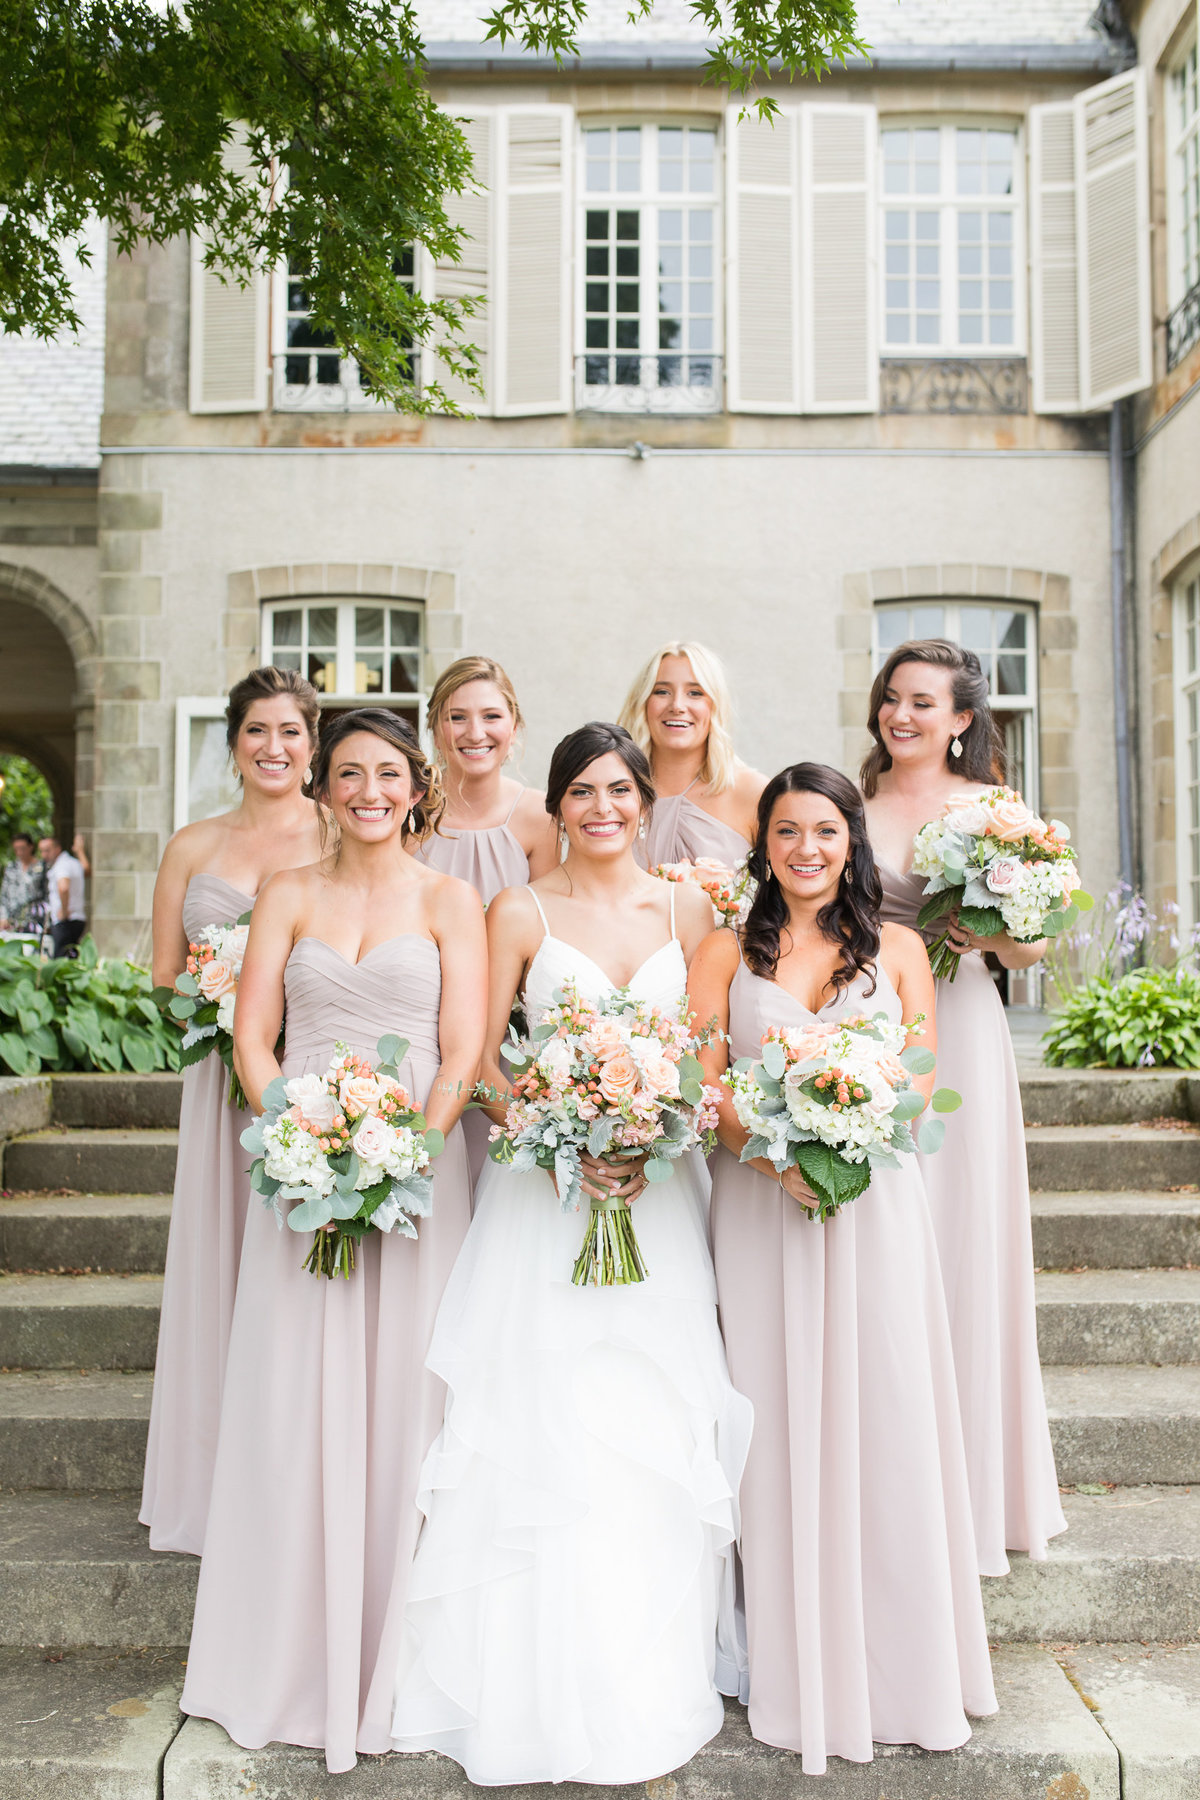 Portraits of the bridesmaids on the steps of Glen Manor House